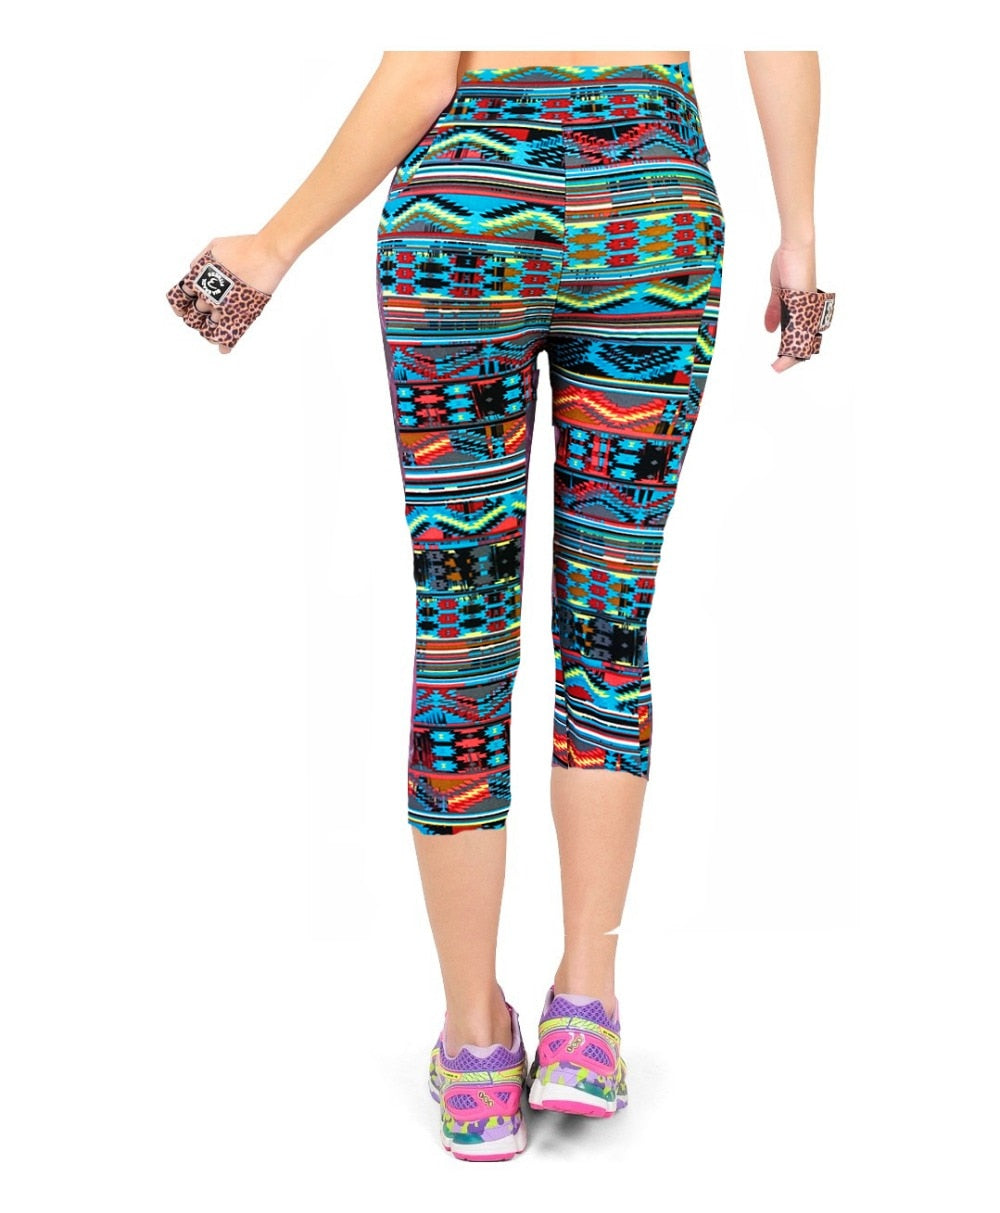 Radio Wave Floral Capris Workout Fitness Leggings